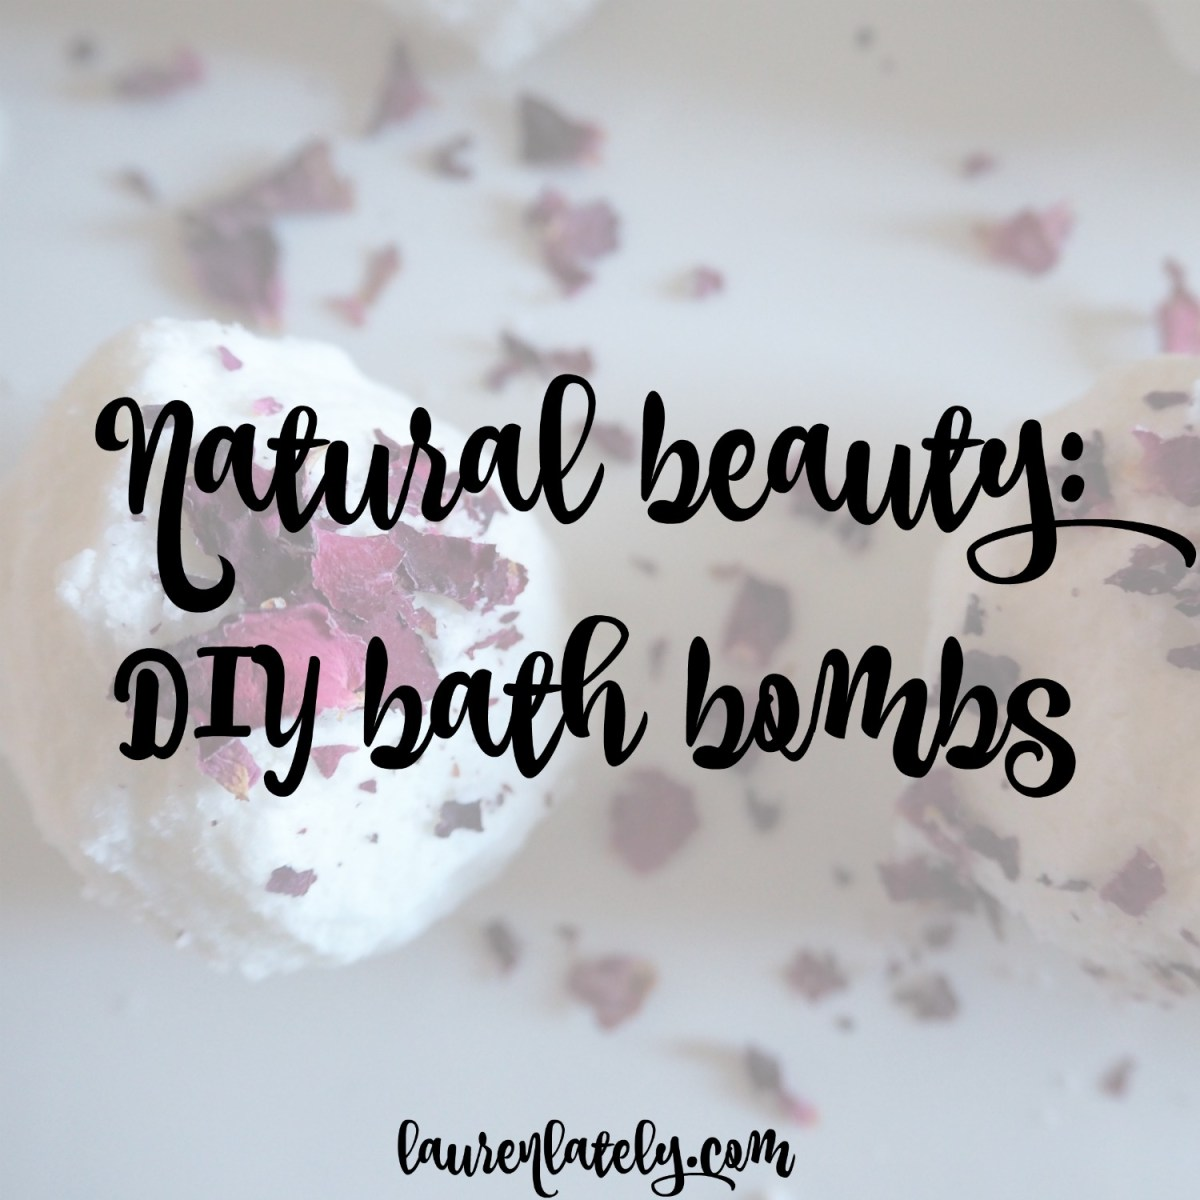 Natural beauty: DIY bath bombs